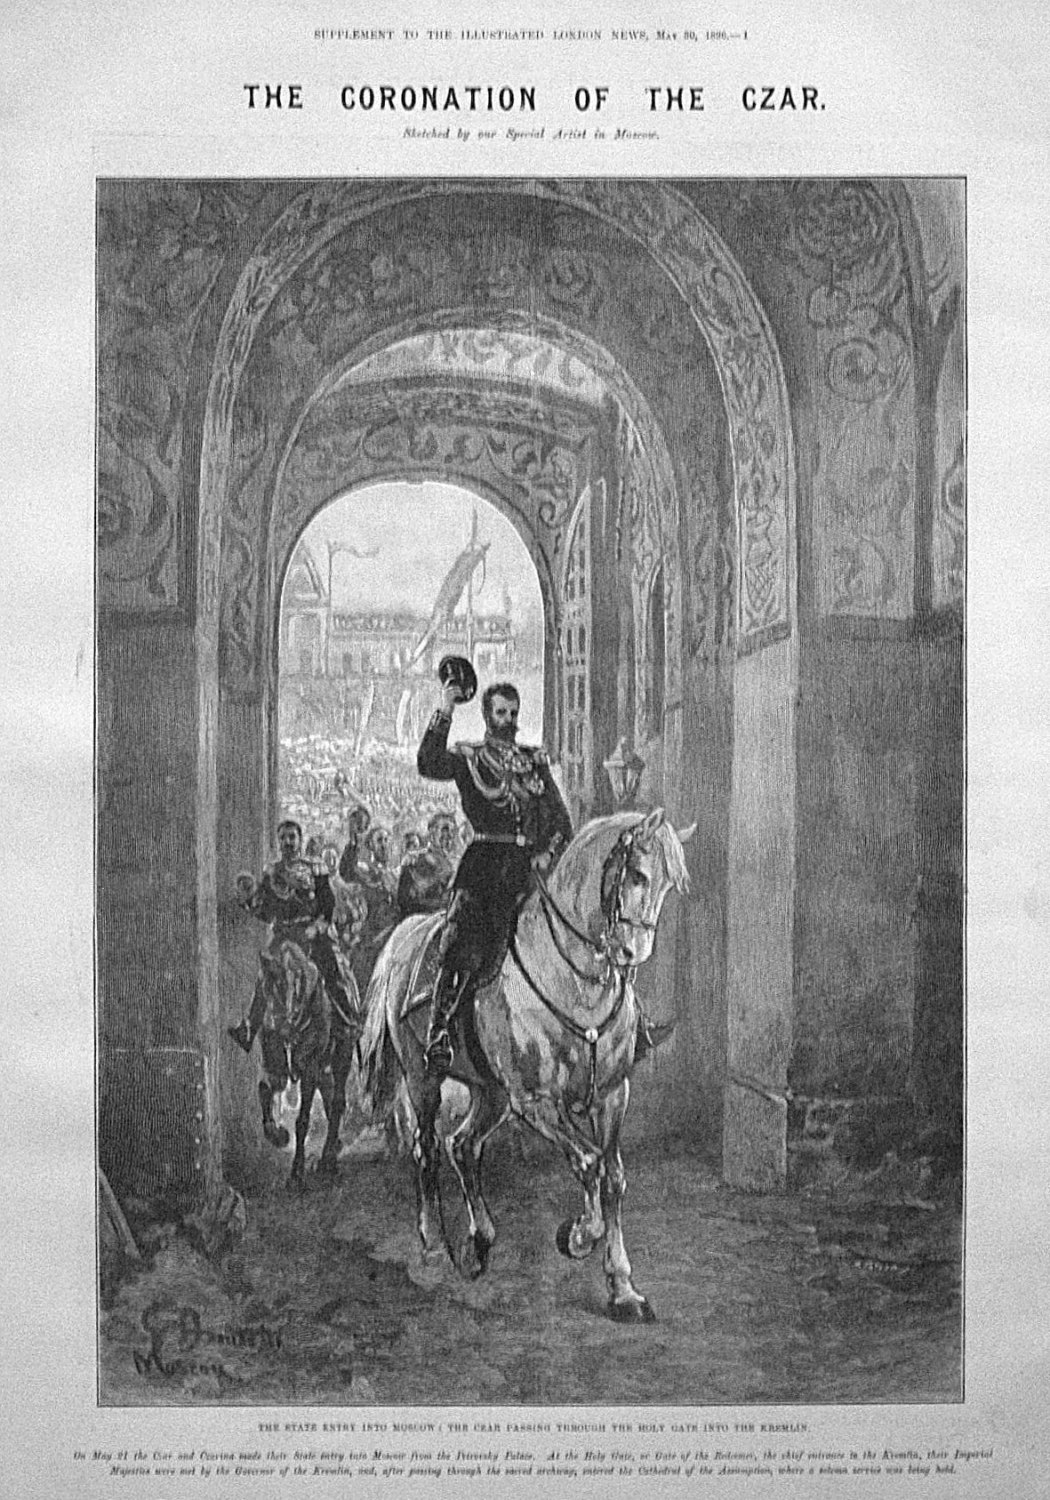 The Coronation of the Czar. The State Entry into Moscow : The Czar Passing